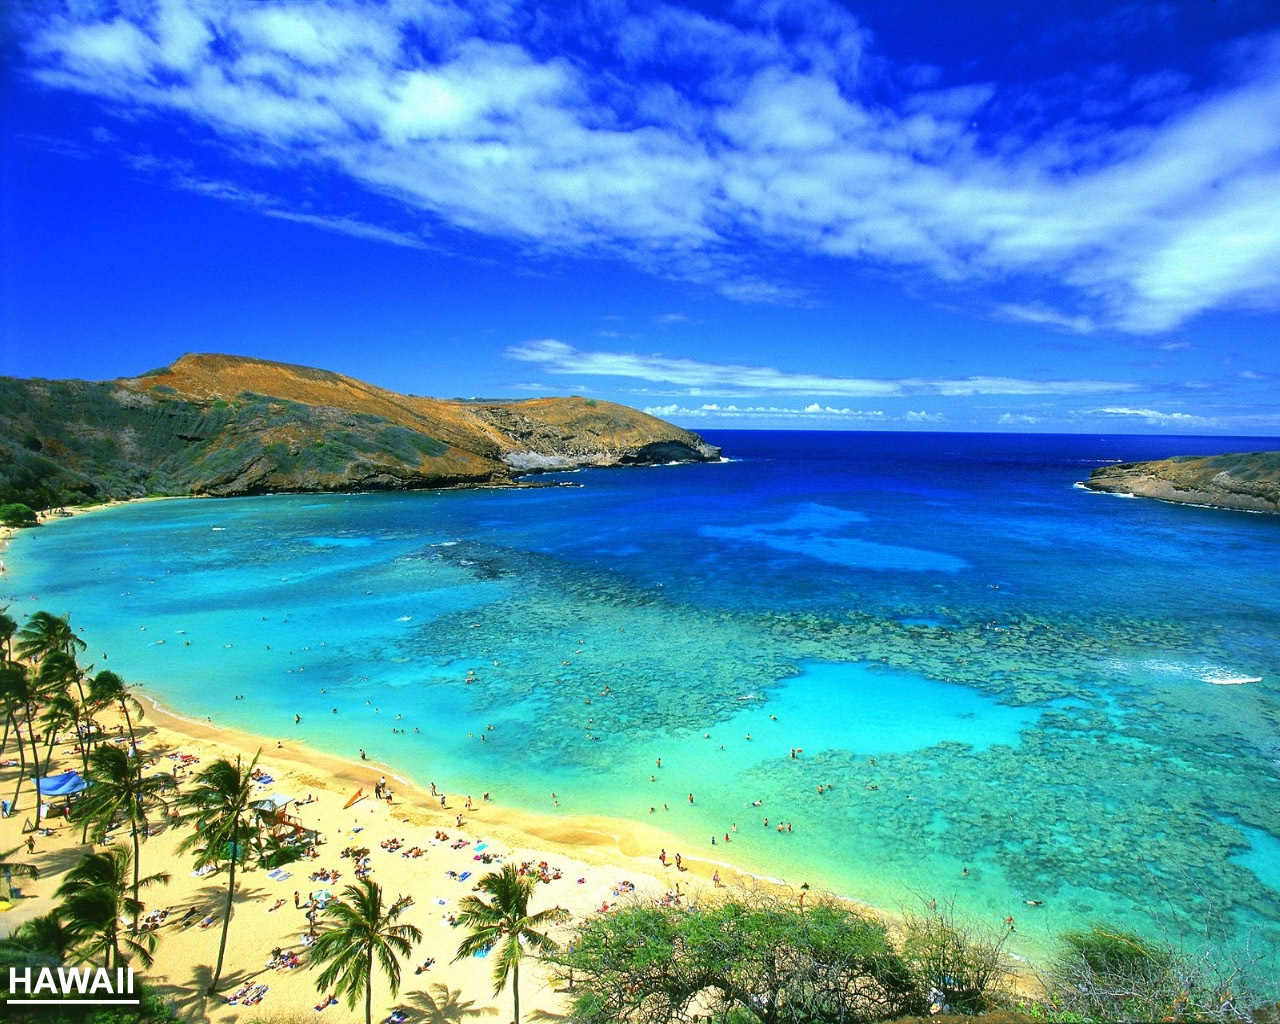 hawaii wallpaper free hd - photo #22